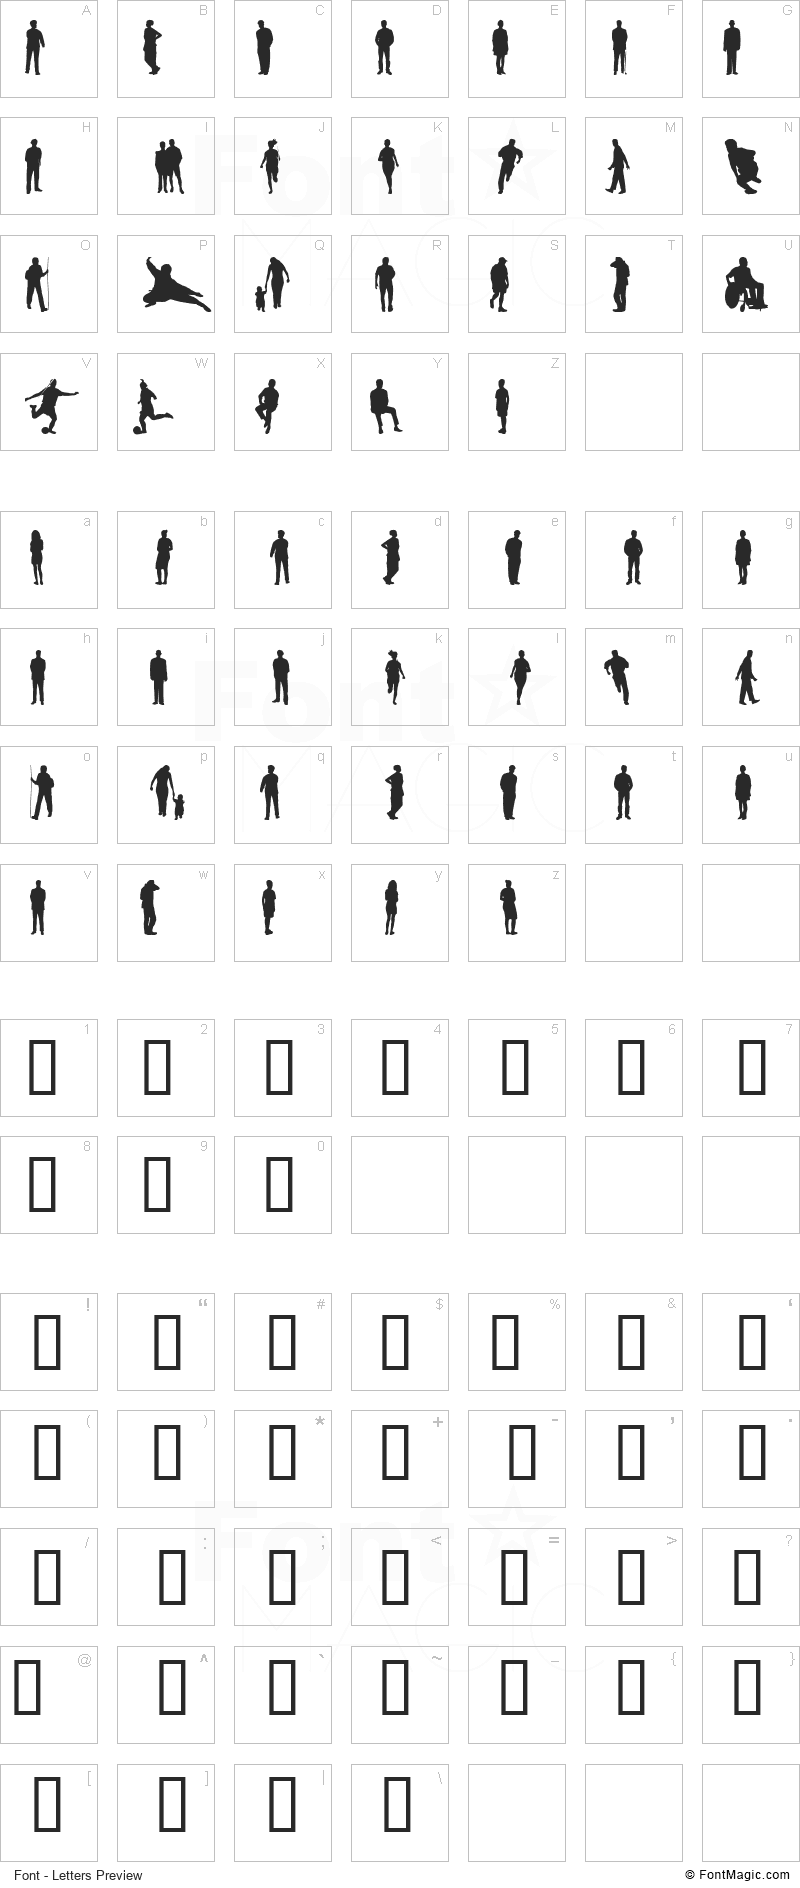 Ihminen Font - All Latters Preview Chart